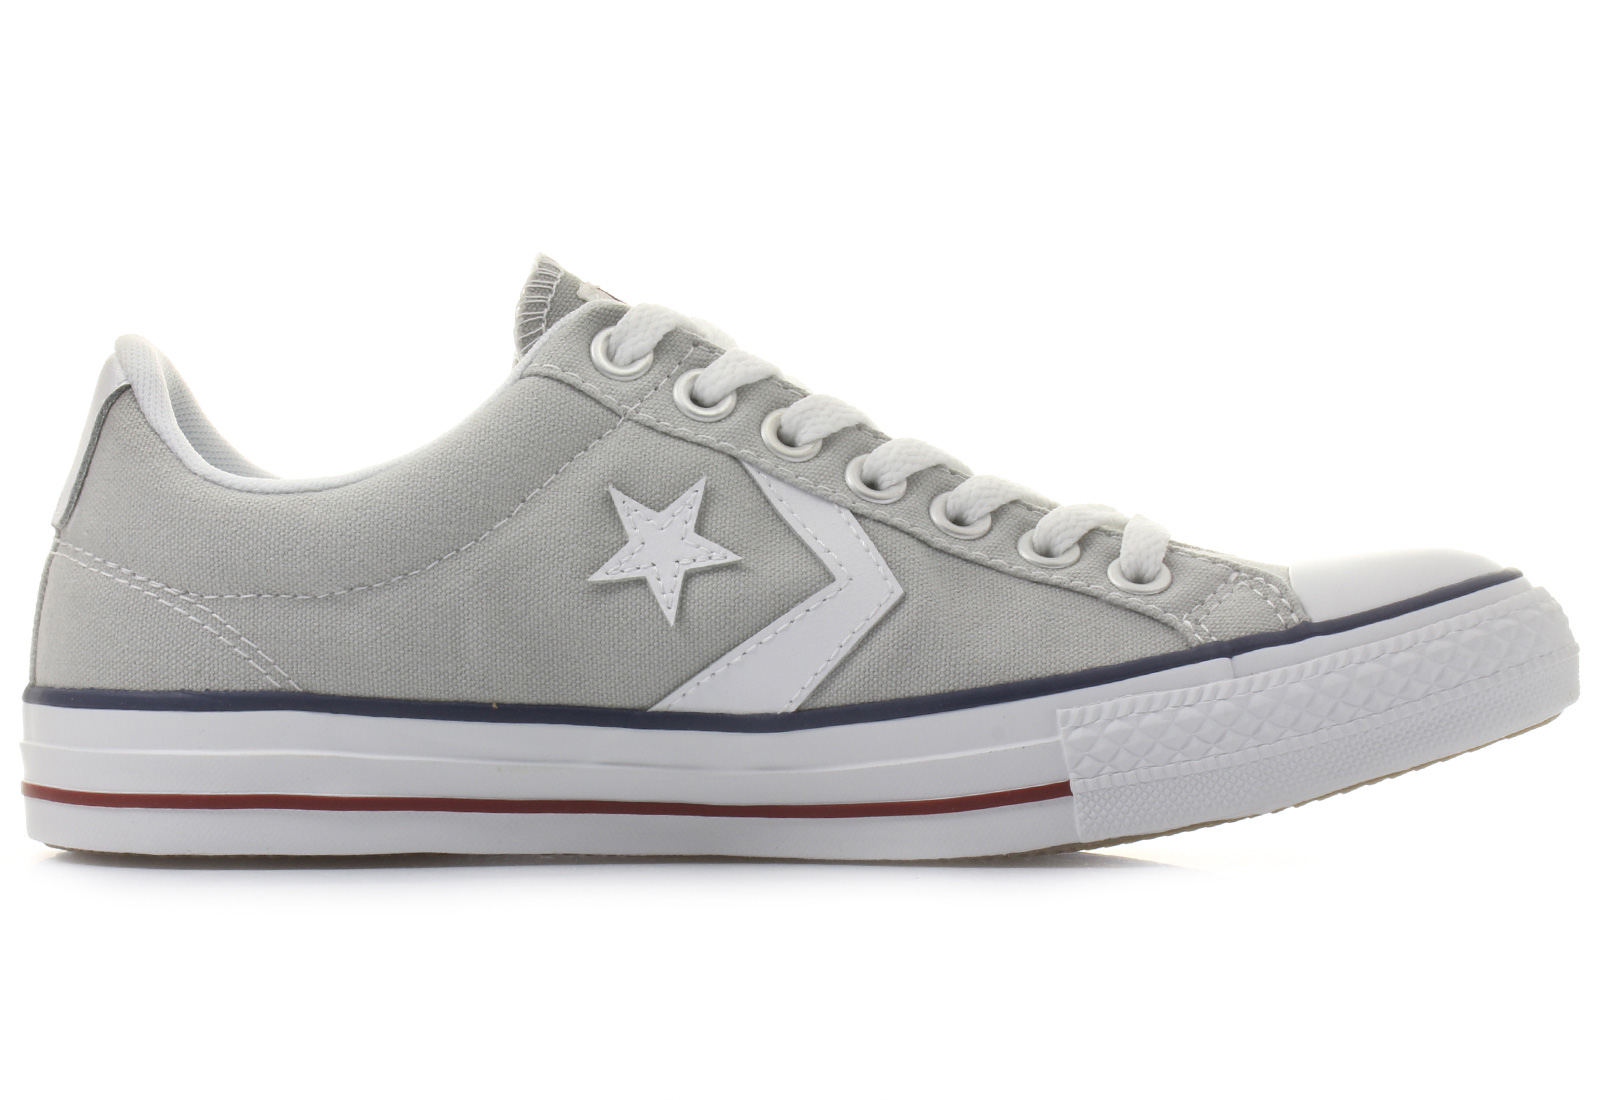 0f074323b76 Converse Sneakers - Star Player Ev Ox - 136929C - Online shop for ...